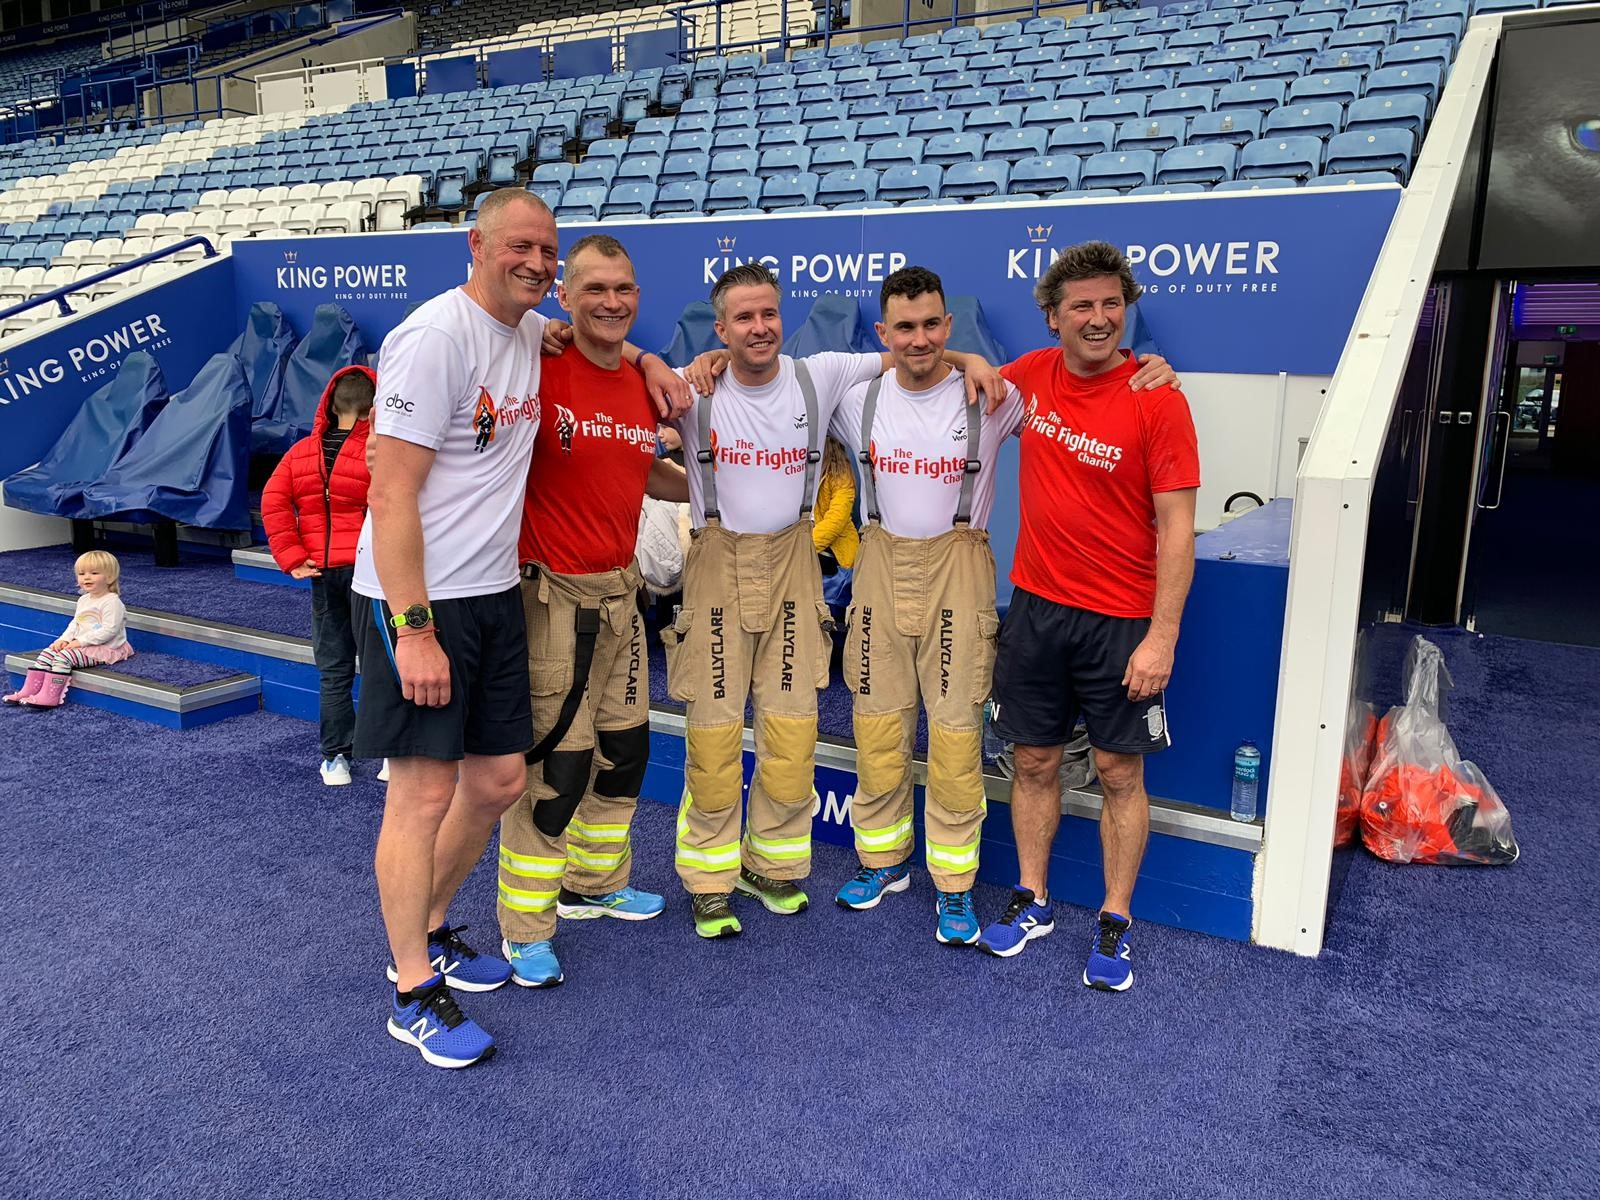 Leicester firefighters' marathon efforts at site of helicopter tragedy